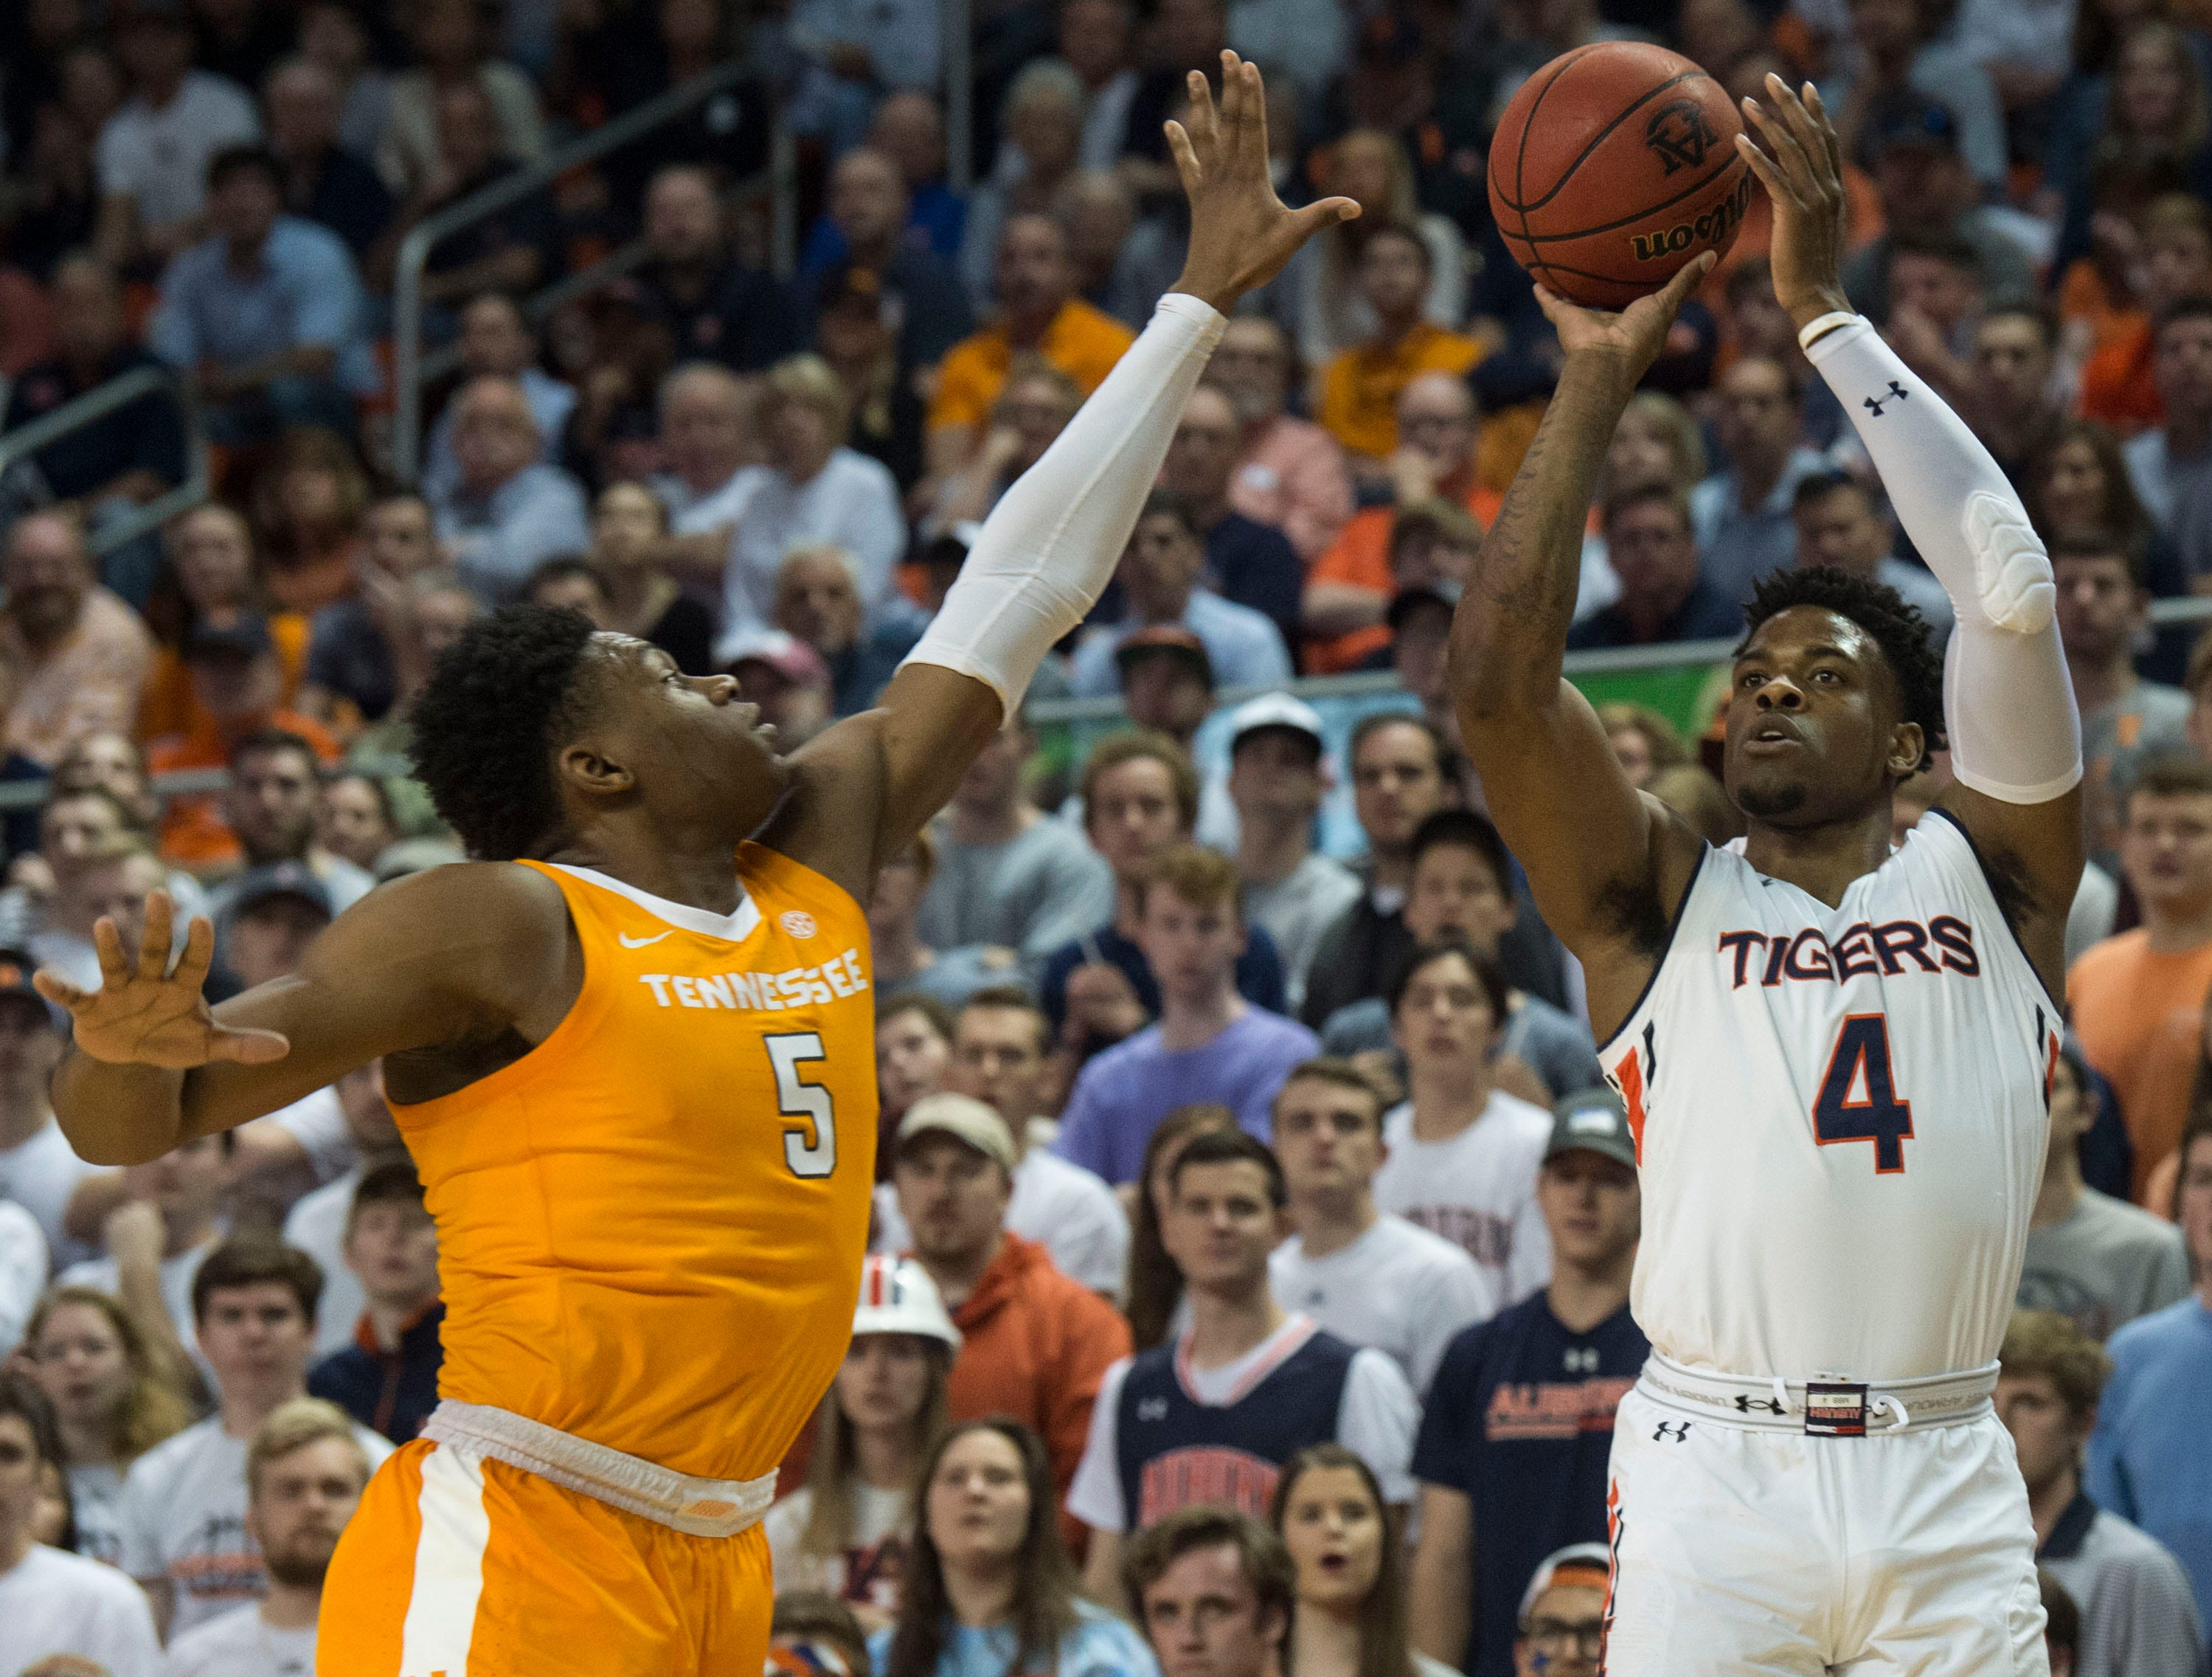 Auburn guard Malik Dunbar (4) takes a three pointer over Tennessee guard Admiral Schofield (5) at Auburn Arena in Auburn, Ala., on Saturday, March 9, 2019. Tennessee leads Auburn 41-35 at halftime.